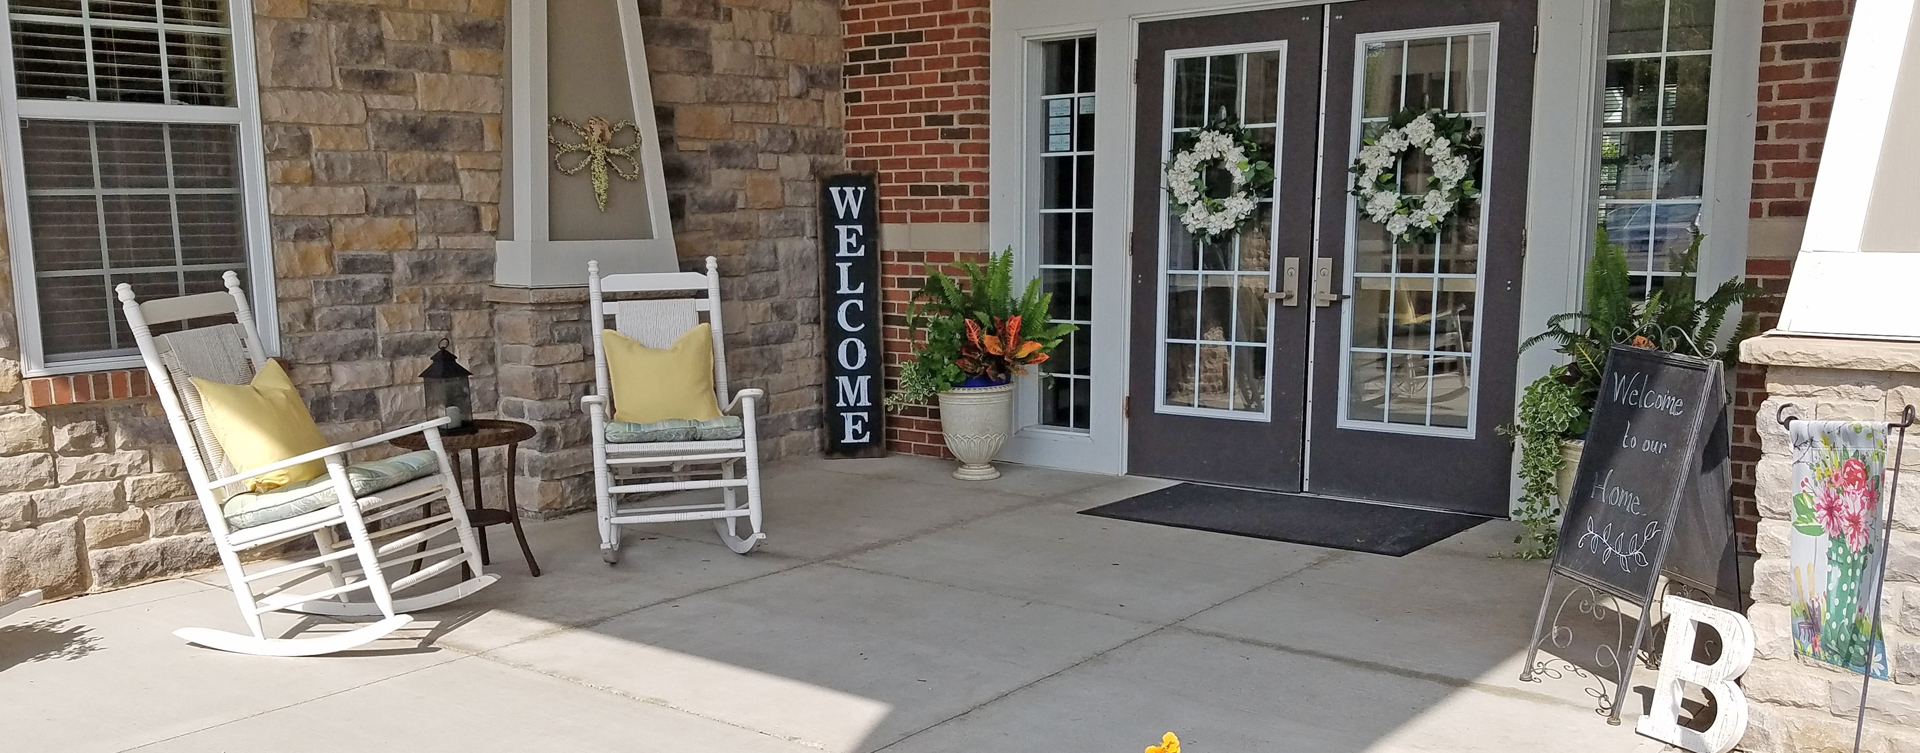 Relax in your favorite chair on the porch at Bickford of Crystal Lake